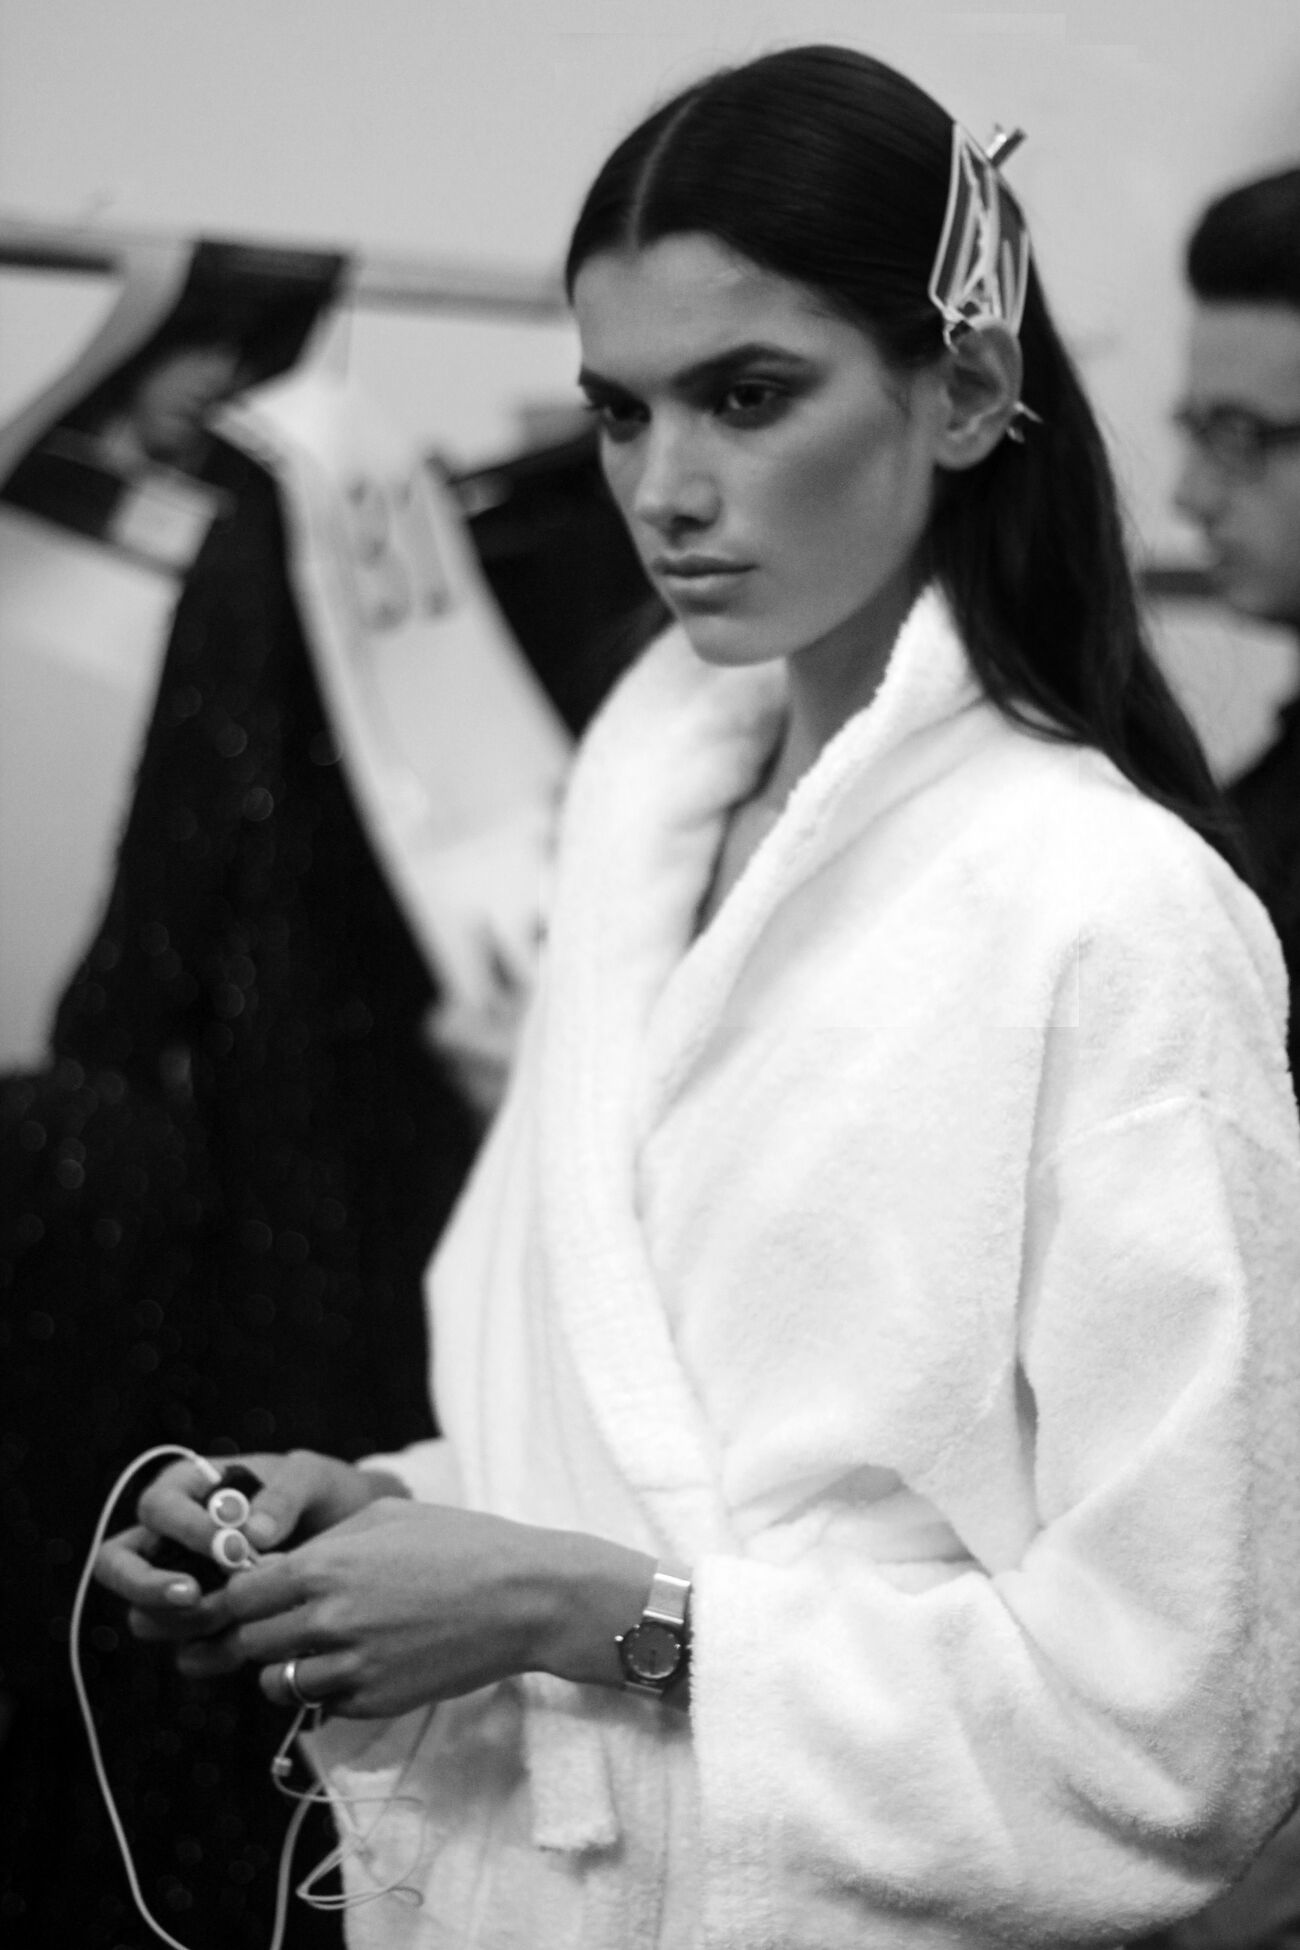 Backstage Mila Schön Woman Milano Fashion Week